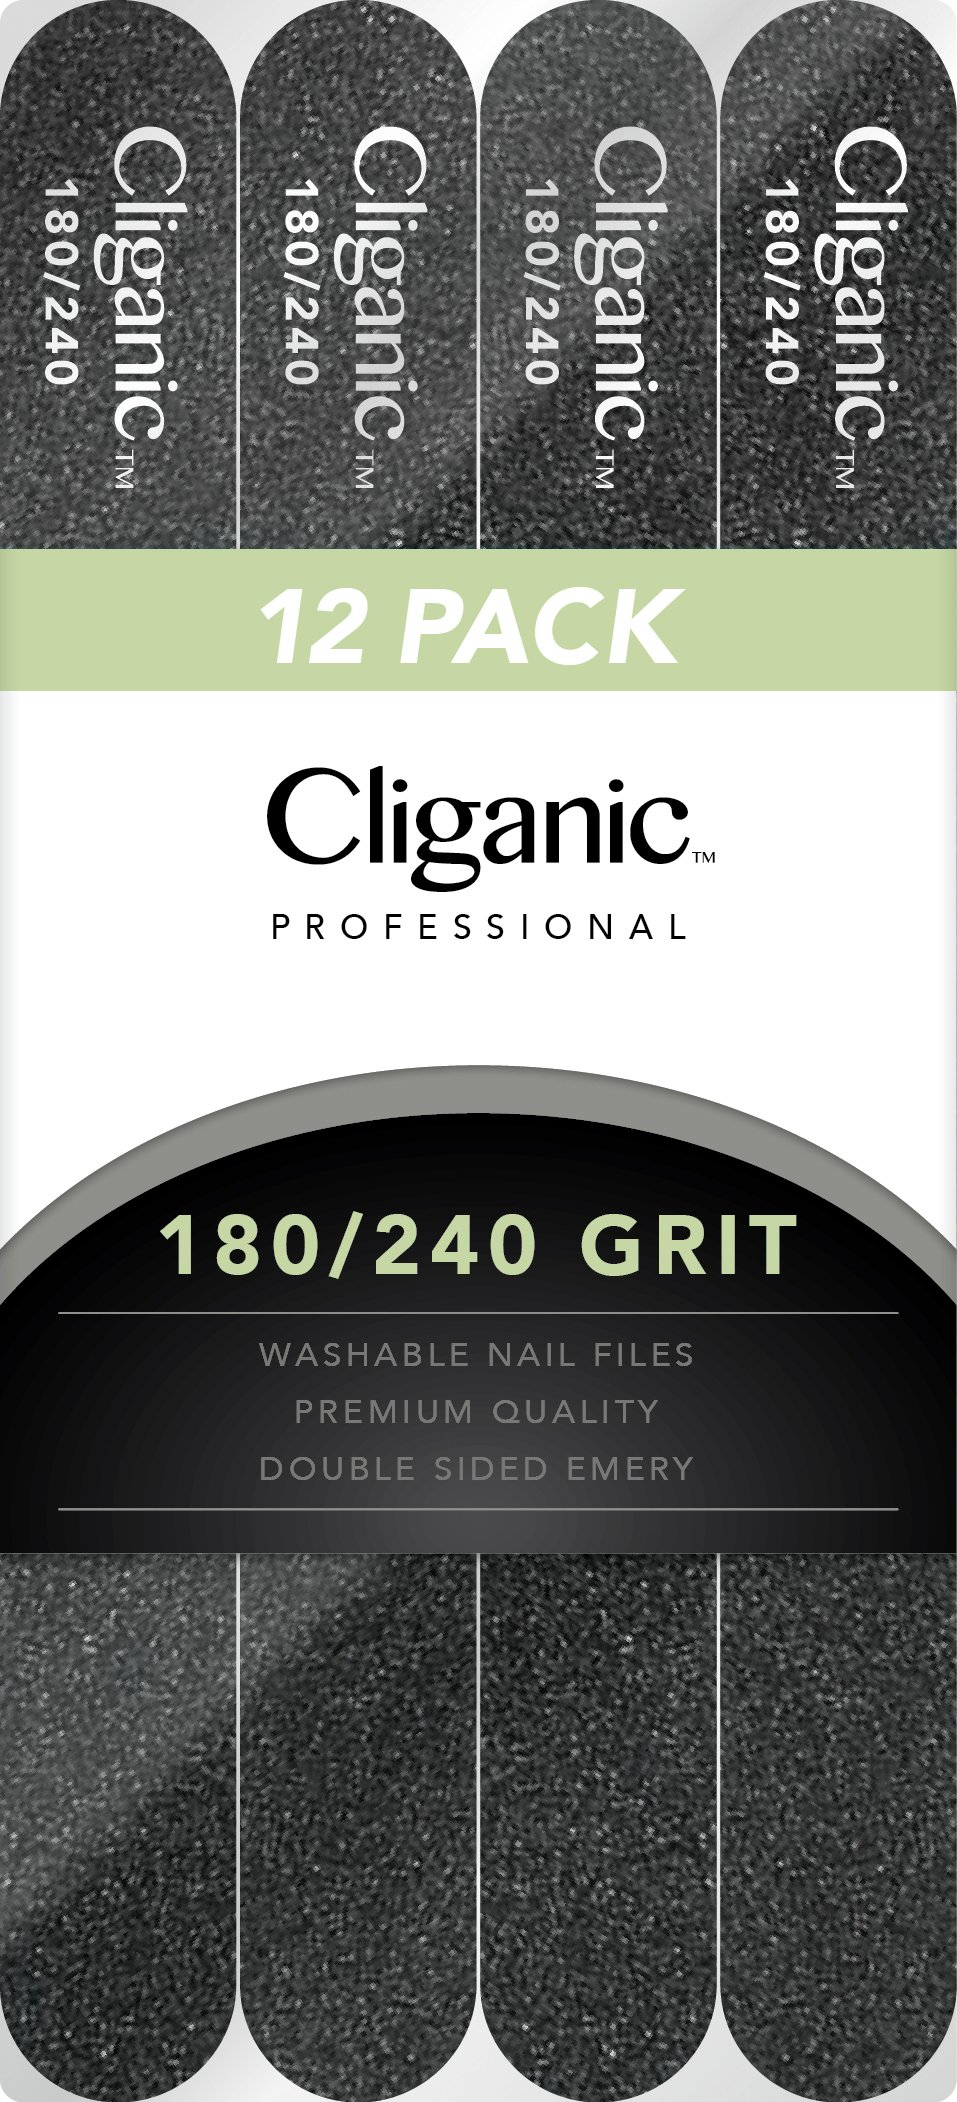 Professional Nail File Set: 180/240 Grit | Emery Boards for Natural, Gel & Acrylic Nails | Washable Double Sided Kit | Cliganic 90 Days Warranty